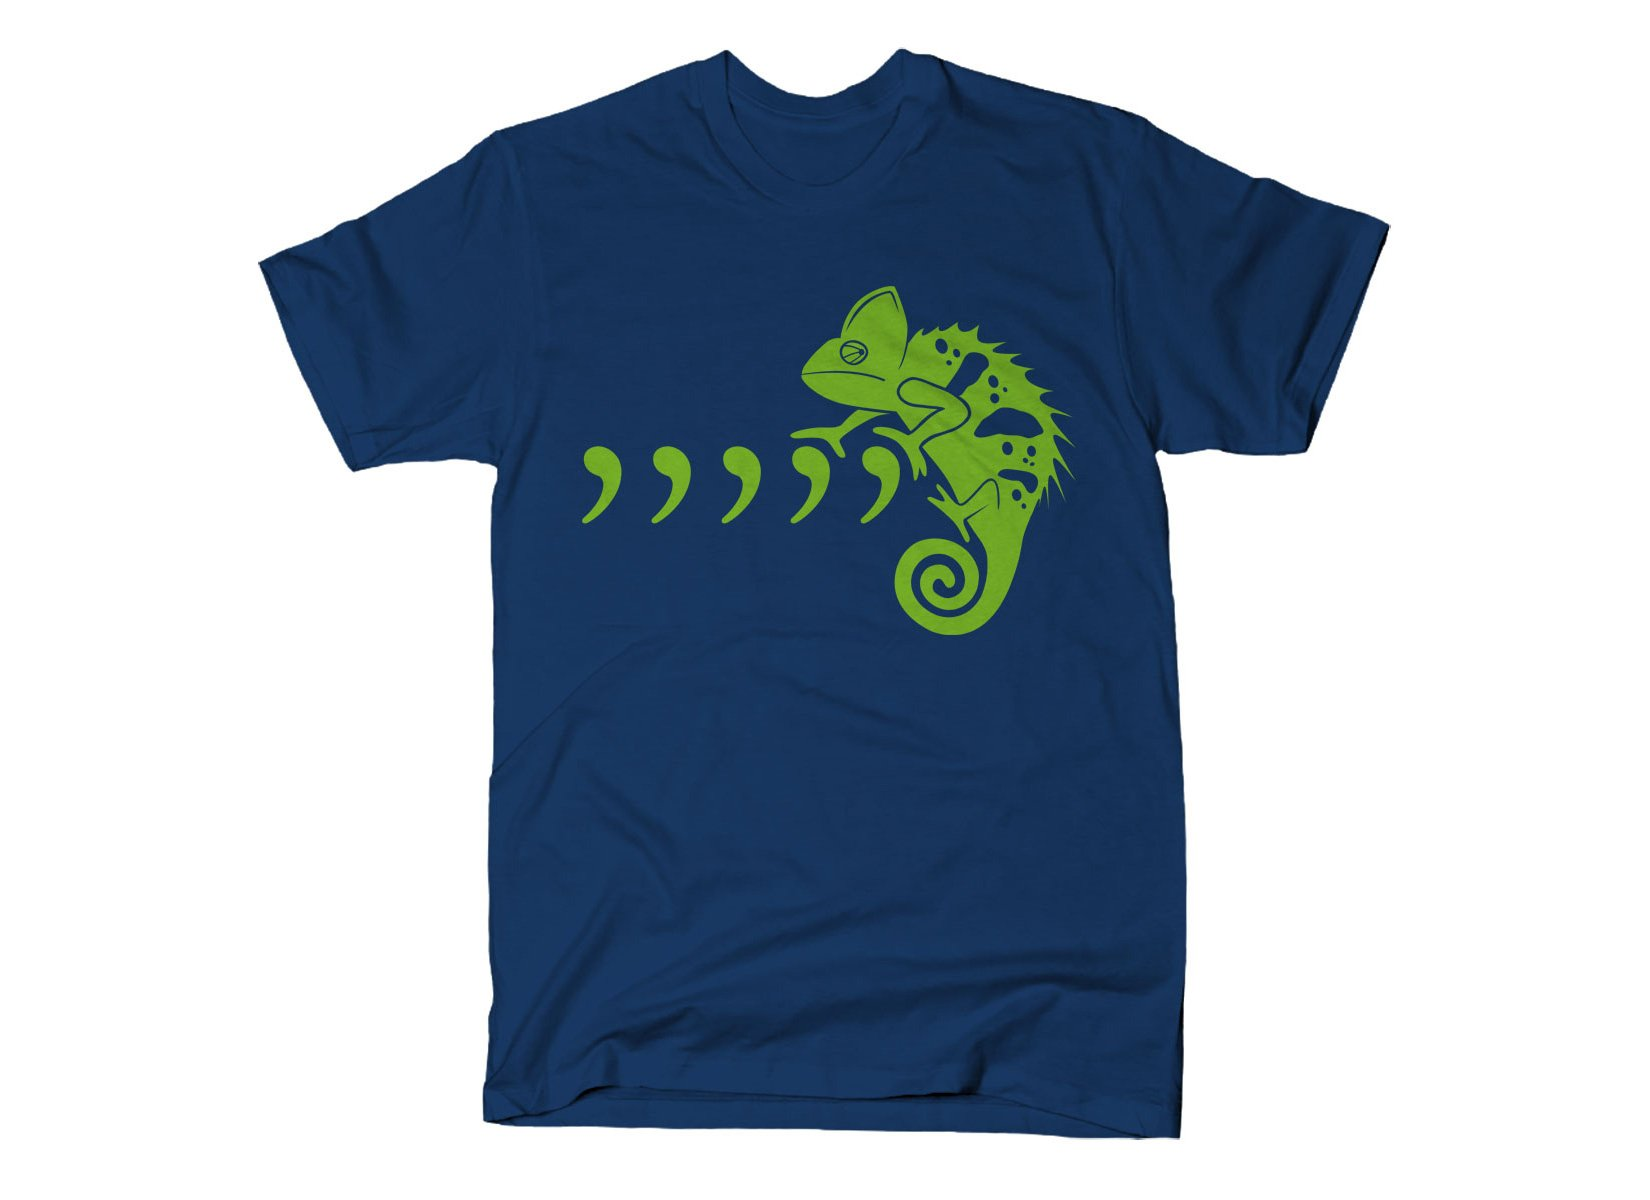 Comma Chameleon on Mens T-Shirt